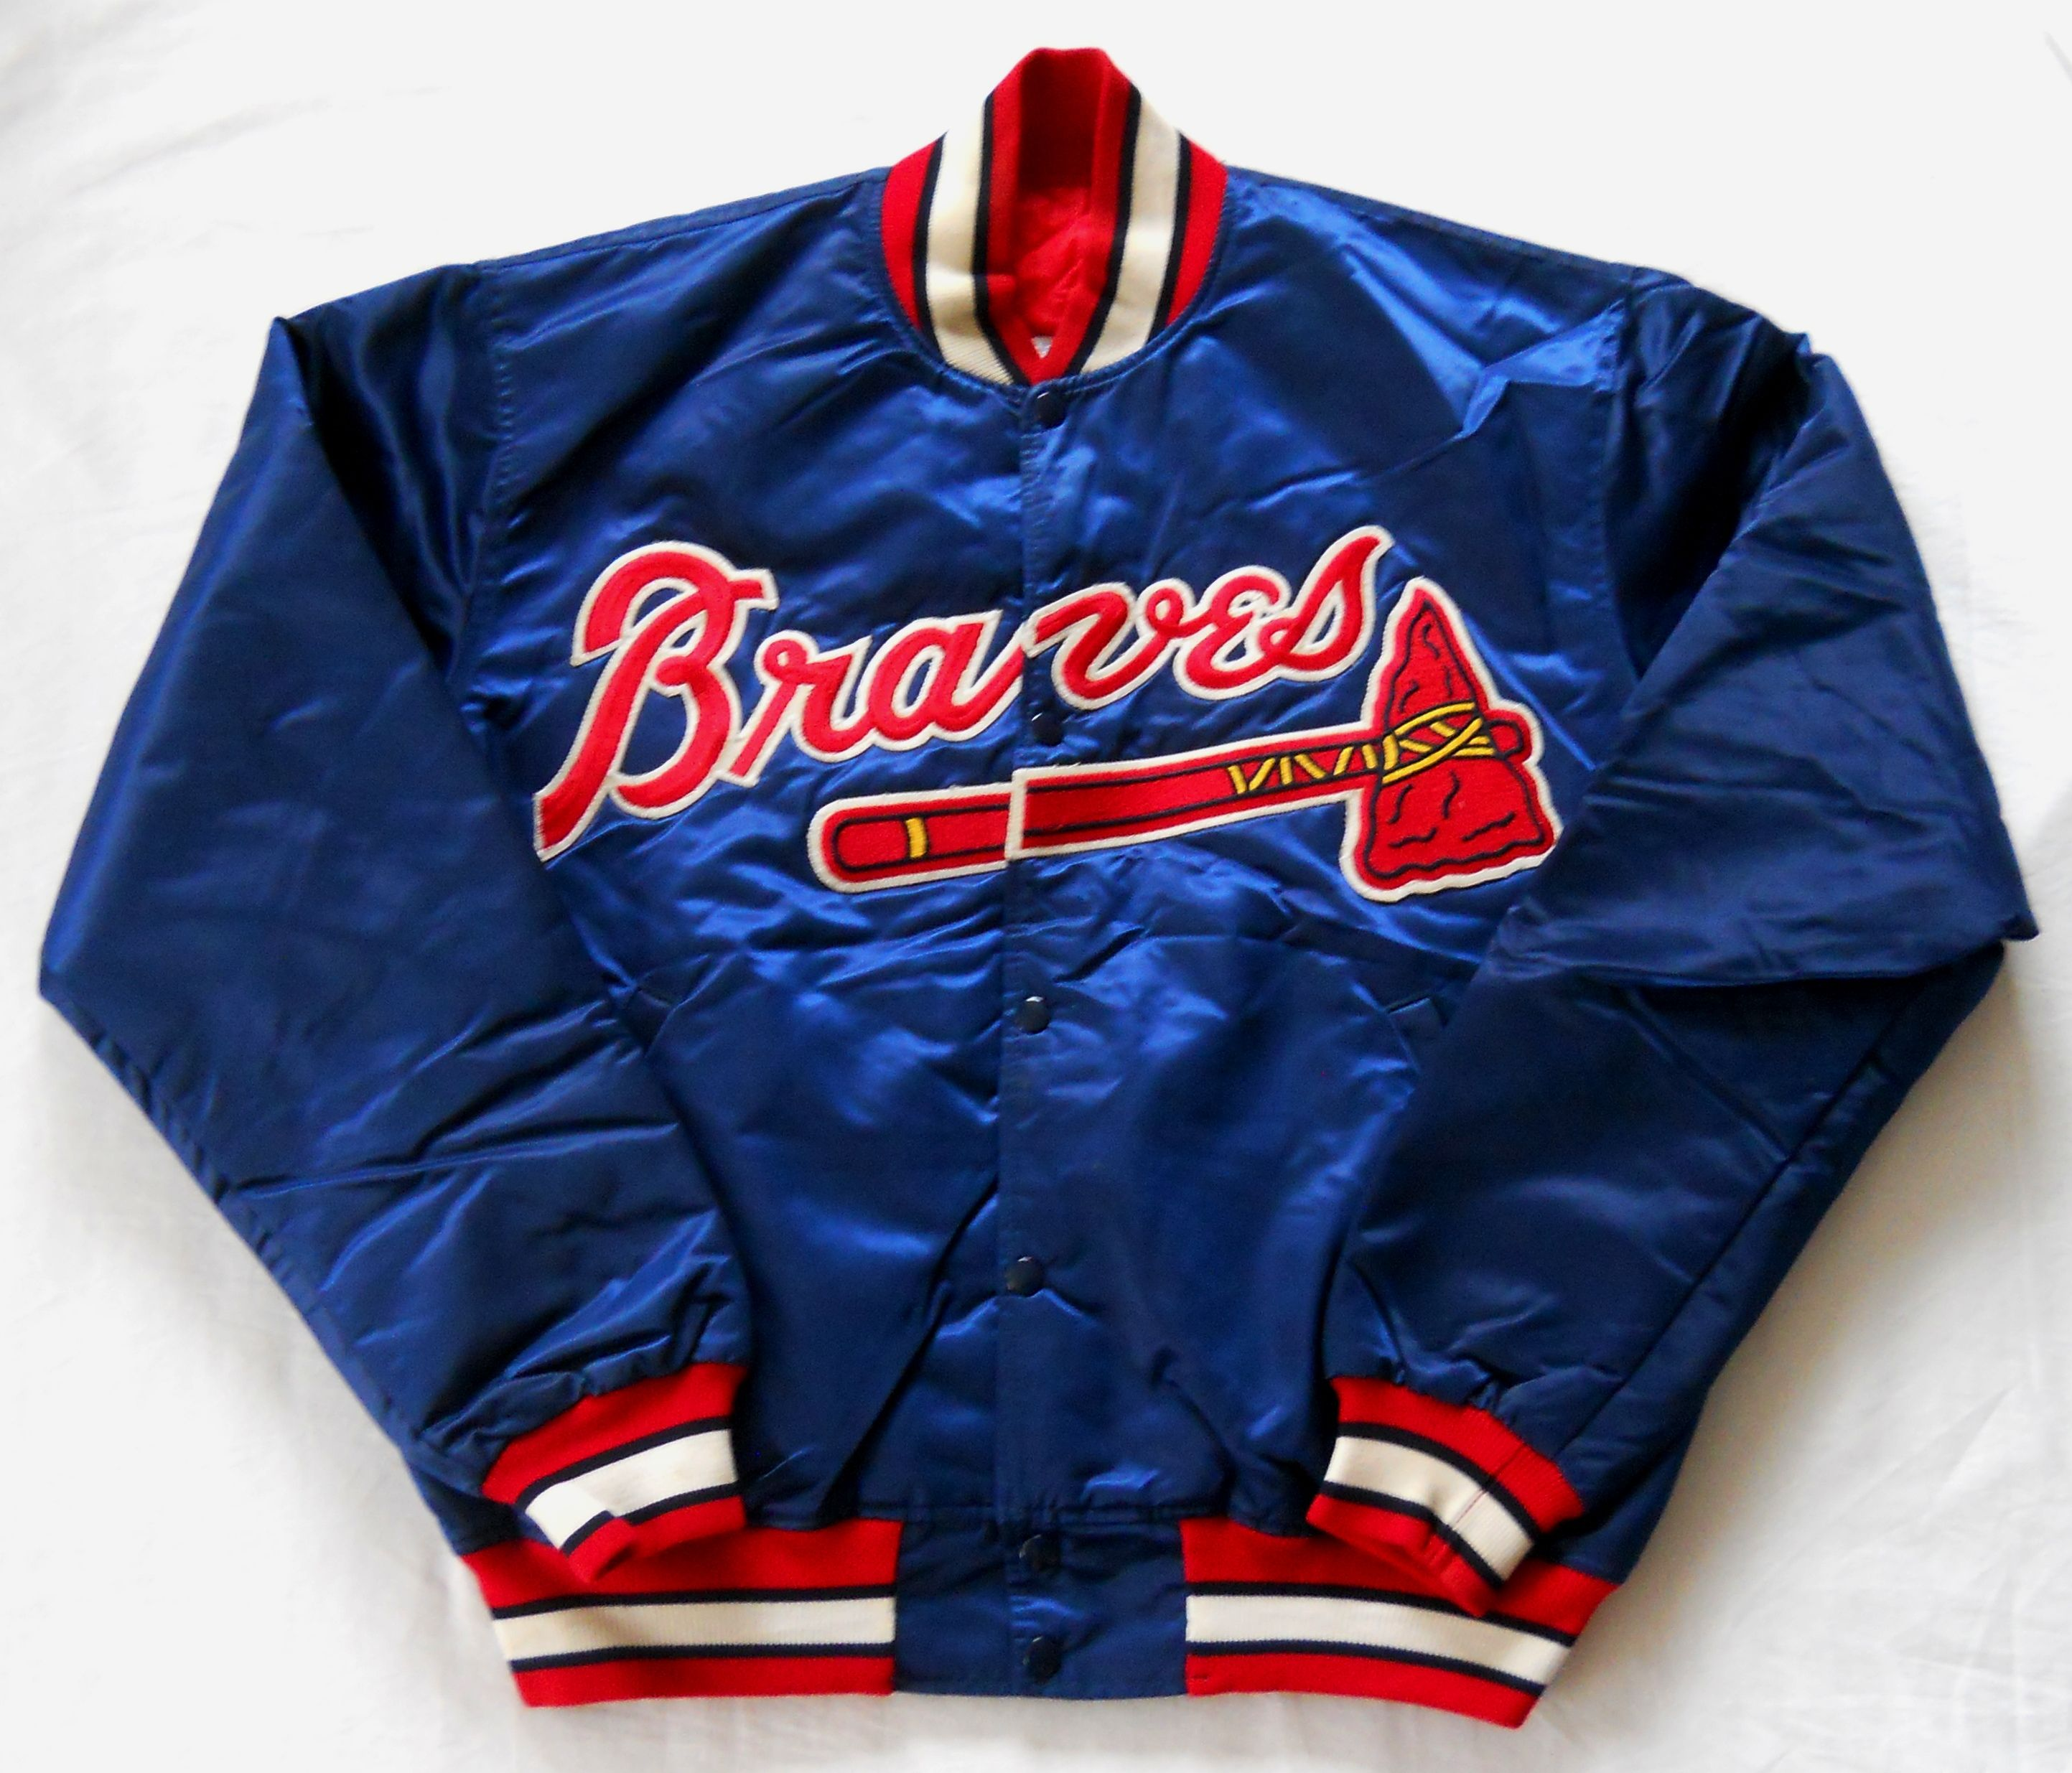 Vintage Early 90s Atlanta Braves Diamnond Collection Satin Jacket By Starter Men S Xl Pre Owned Jackets Cool Jackets Satin Jackets